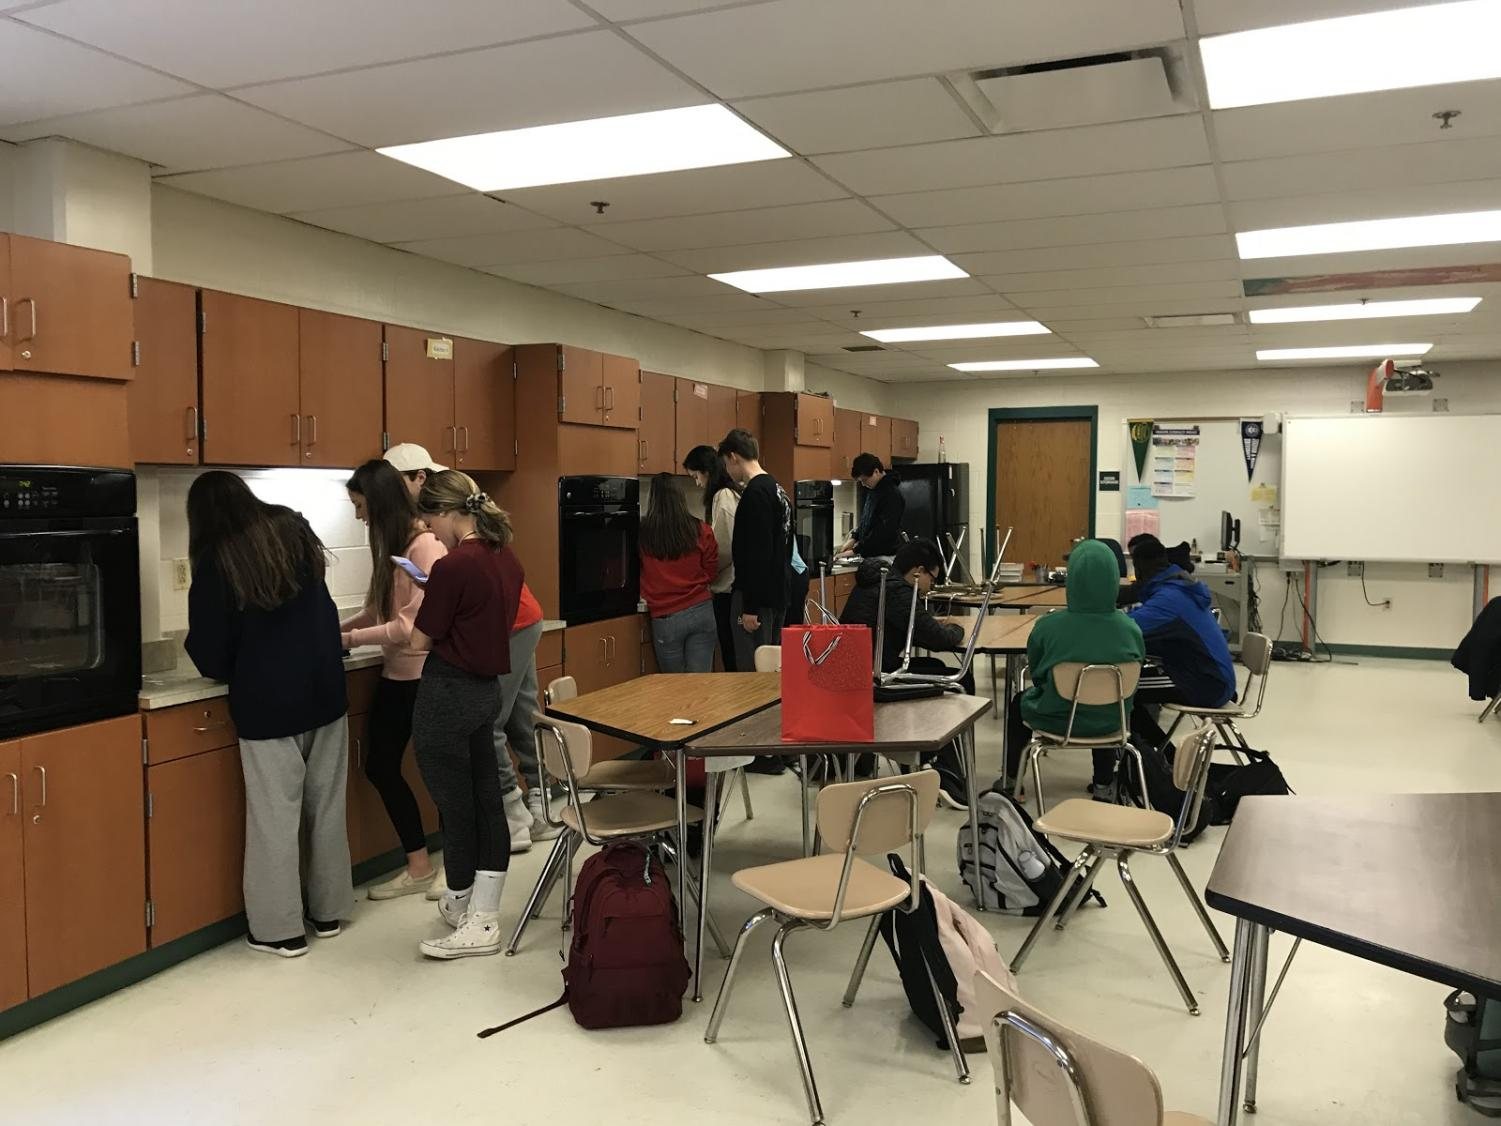 The+different+student+groups+line+up+at+their+stations+to+make+the+finishing+touches+on+their+chocolate+dishes.+In+the+first+period+class+Amelia+Fink%2C+Nna+Oranuba%2C+Patrick+Rosenbaum%2C+Tara+Taj%2C+Fernanda+Thomazi+and+Leila+Hamidi-Imani+won.+In+the+second+period+class+Ethan+Aronovich+Jhon+Arpon+and+Bvlgari+Welch+won.+Photo+by+Sam+Falb